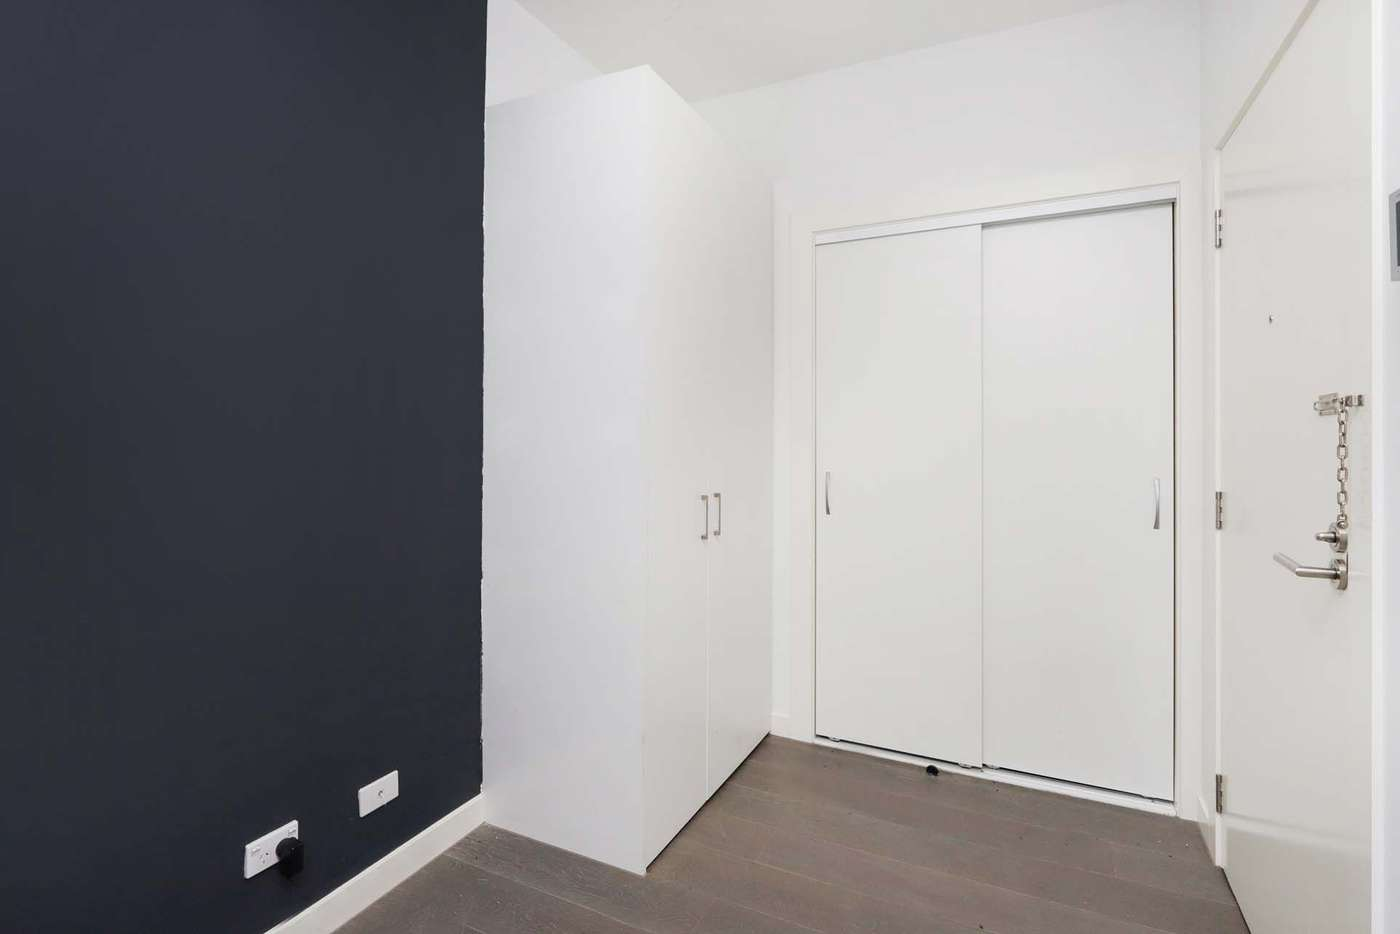 Sixth view of Homely apartment listing, 207/699c-703 Barkly Street, West Footscray VIC 3012